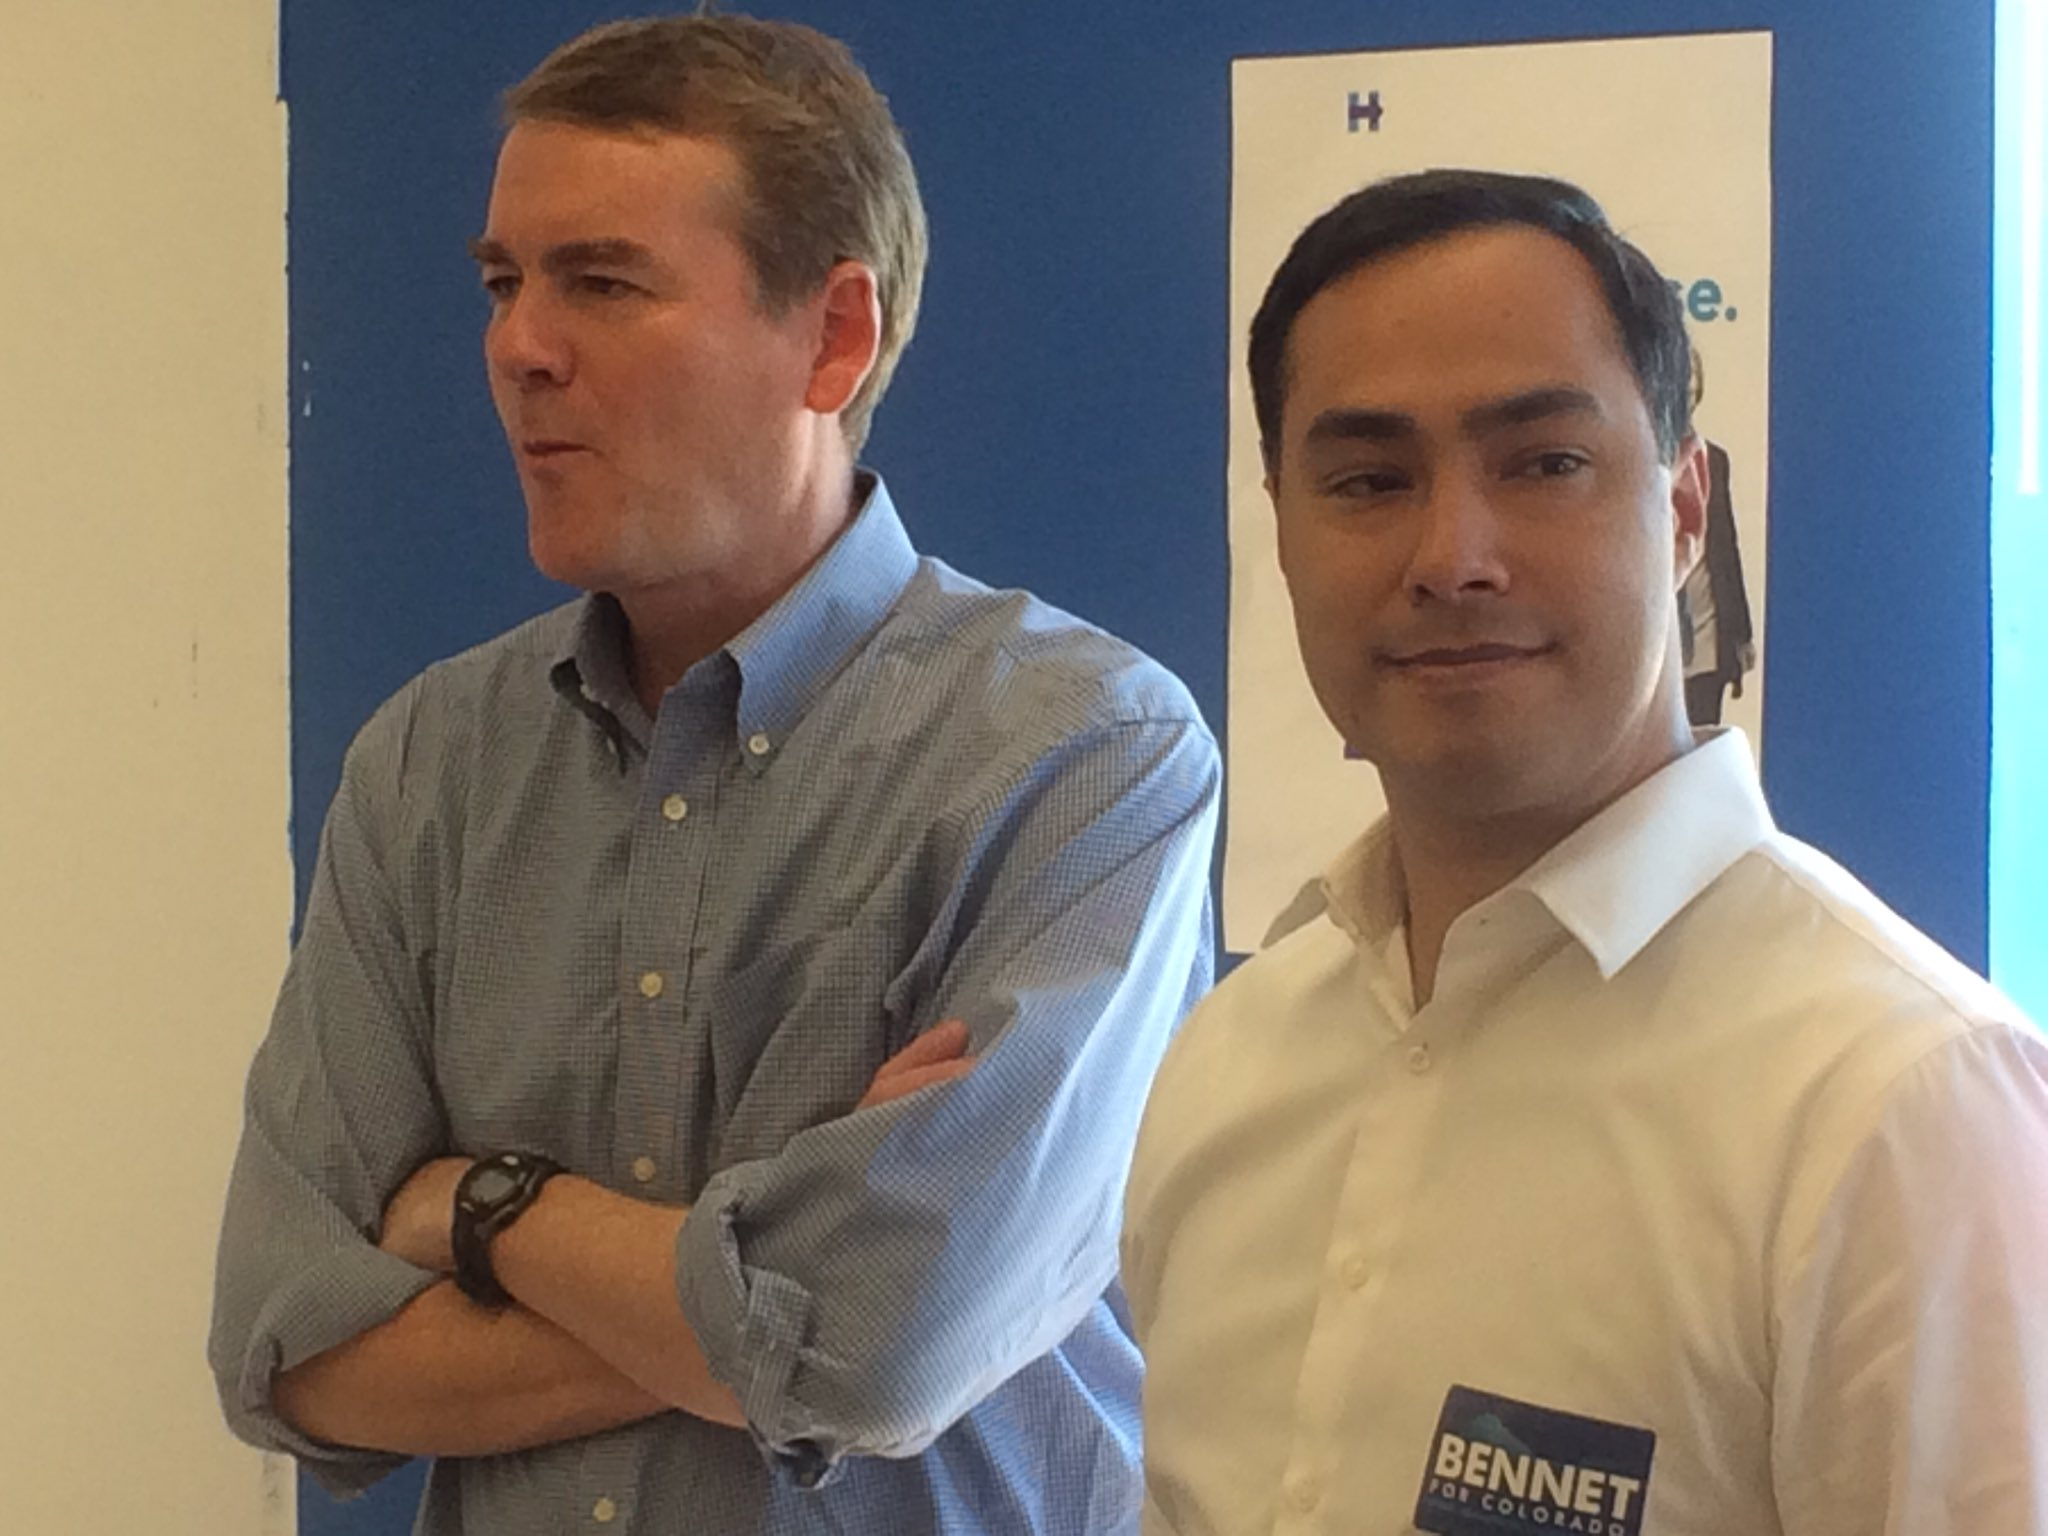 Colorado U.S. Sen. Michael Bennet and Texas U.S. Rep. Joaquin Castro at the Commerce City Democratic Party office headquarters opening Saturday (Photo by Ernest Luning/The Colorado Statesman).